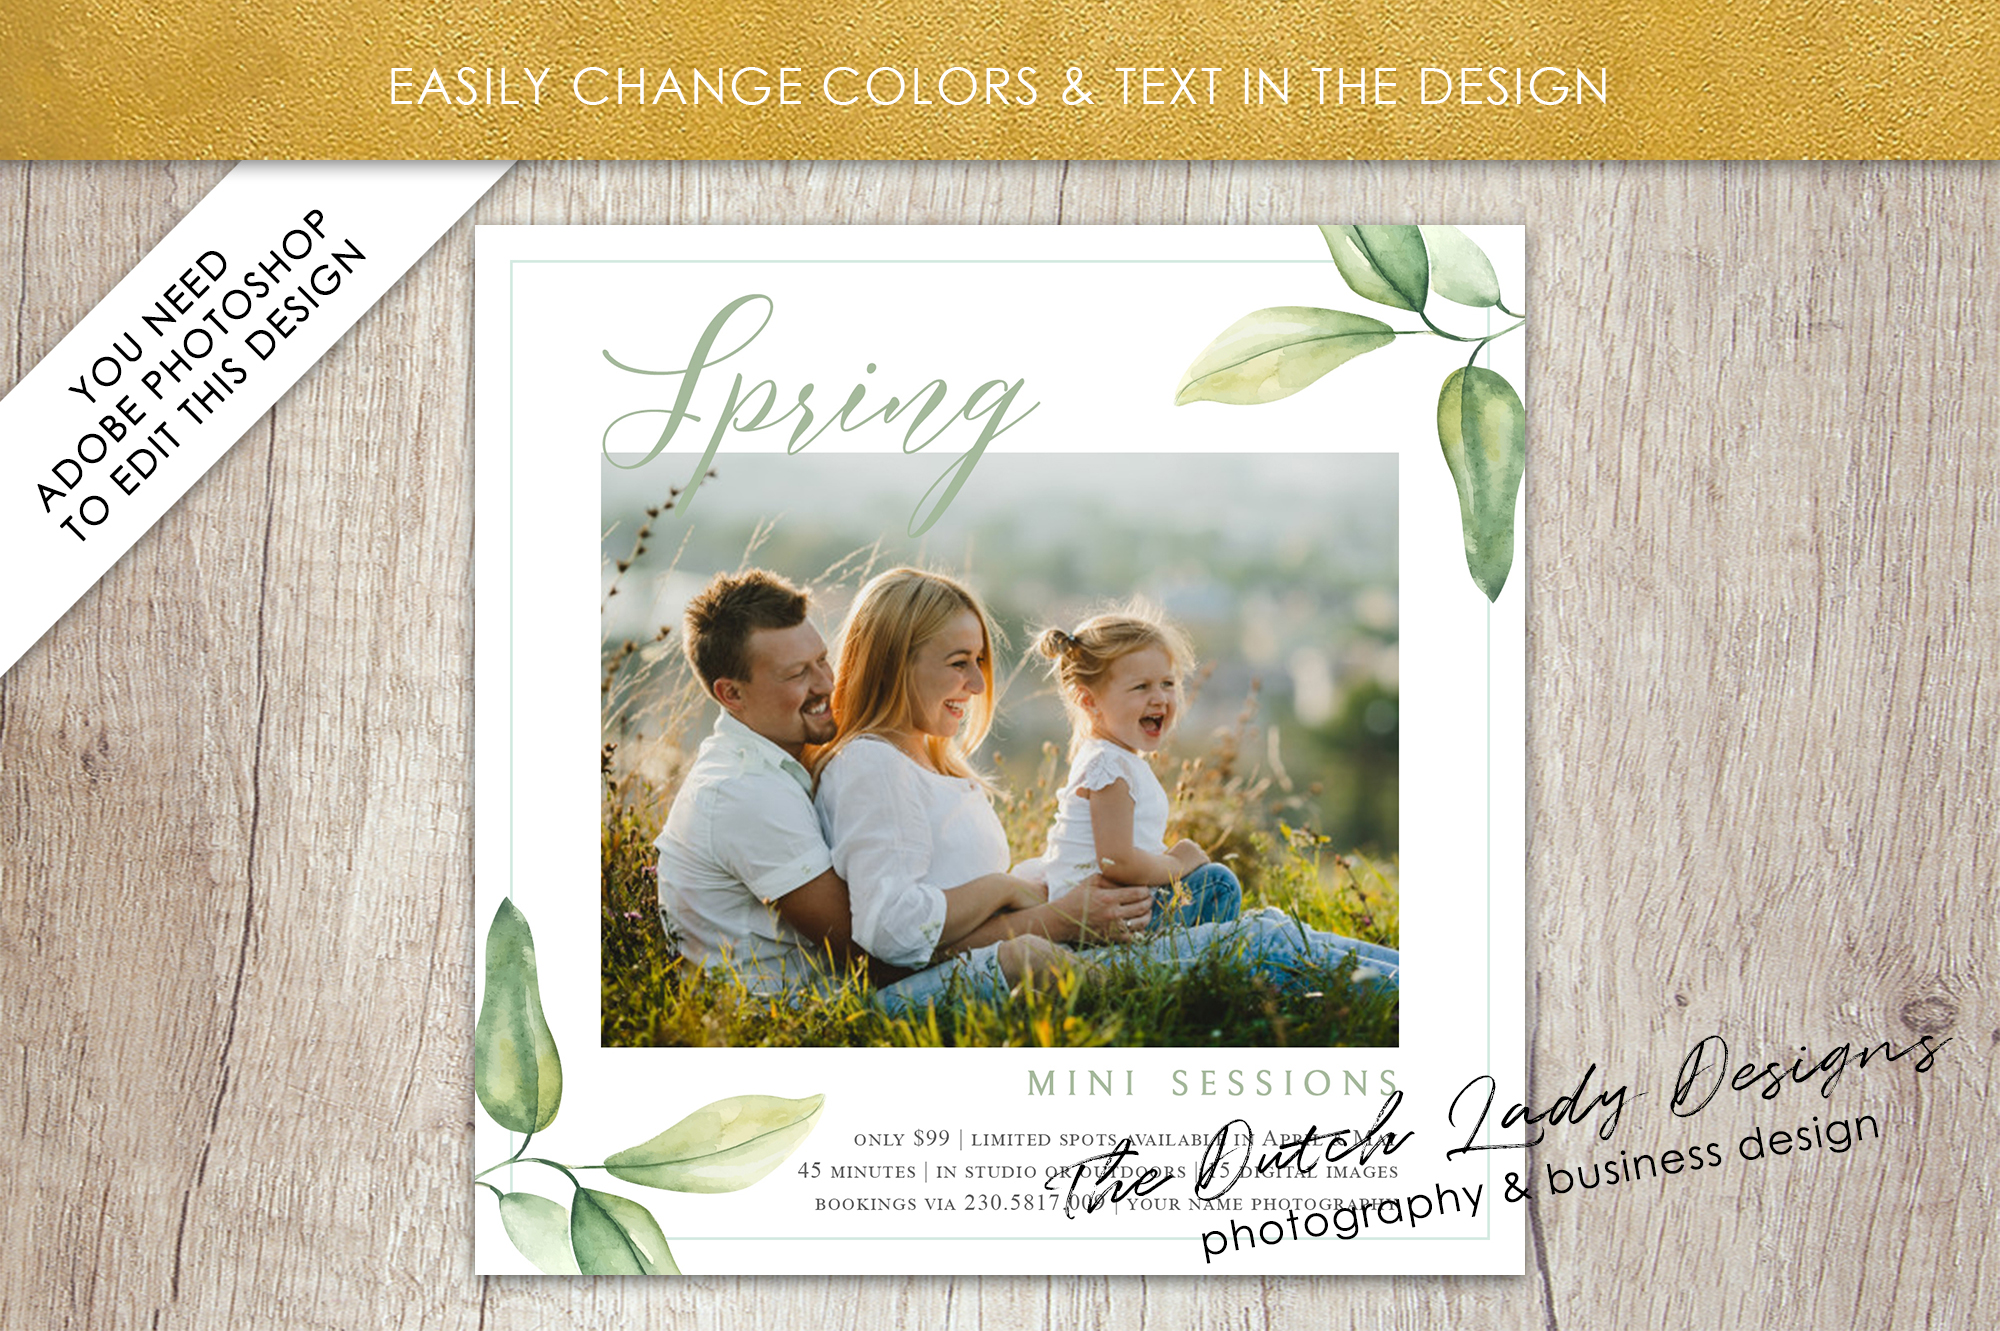 PSD Spring Photo Session Card Template - Design #35 example image 4